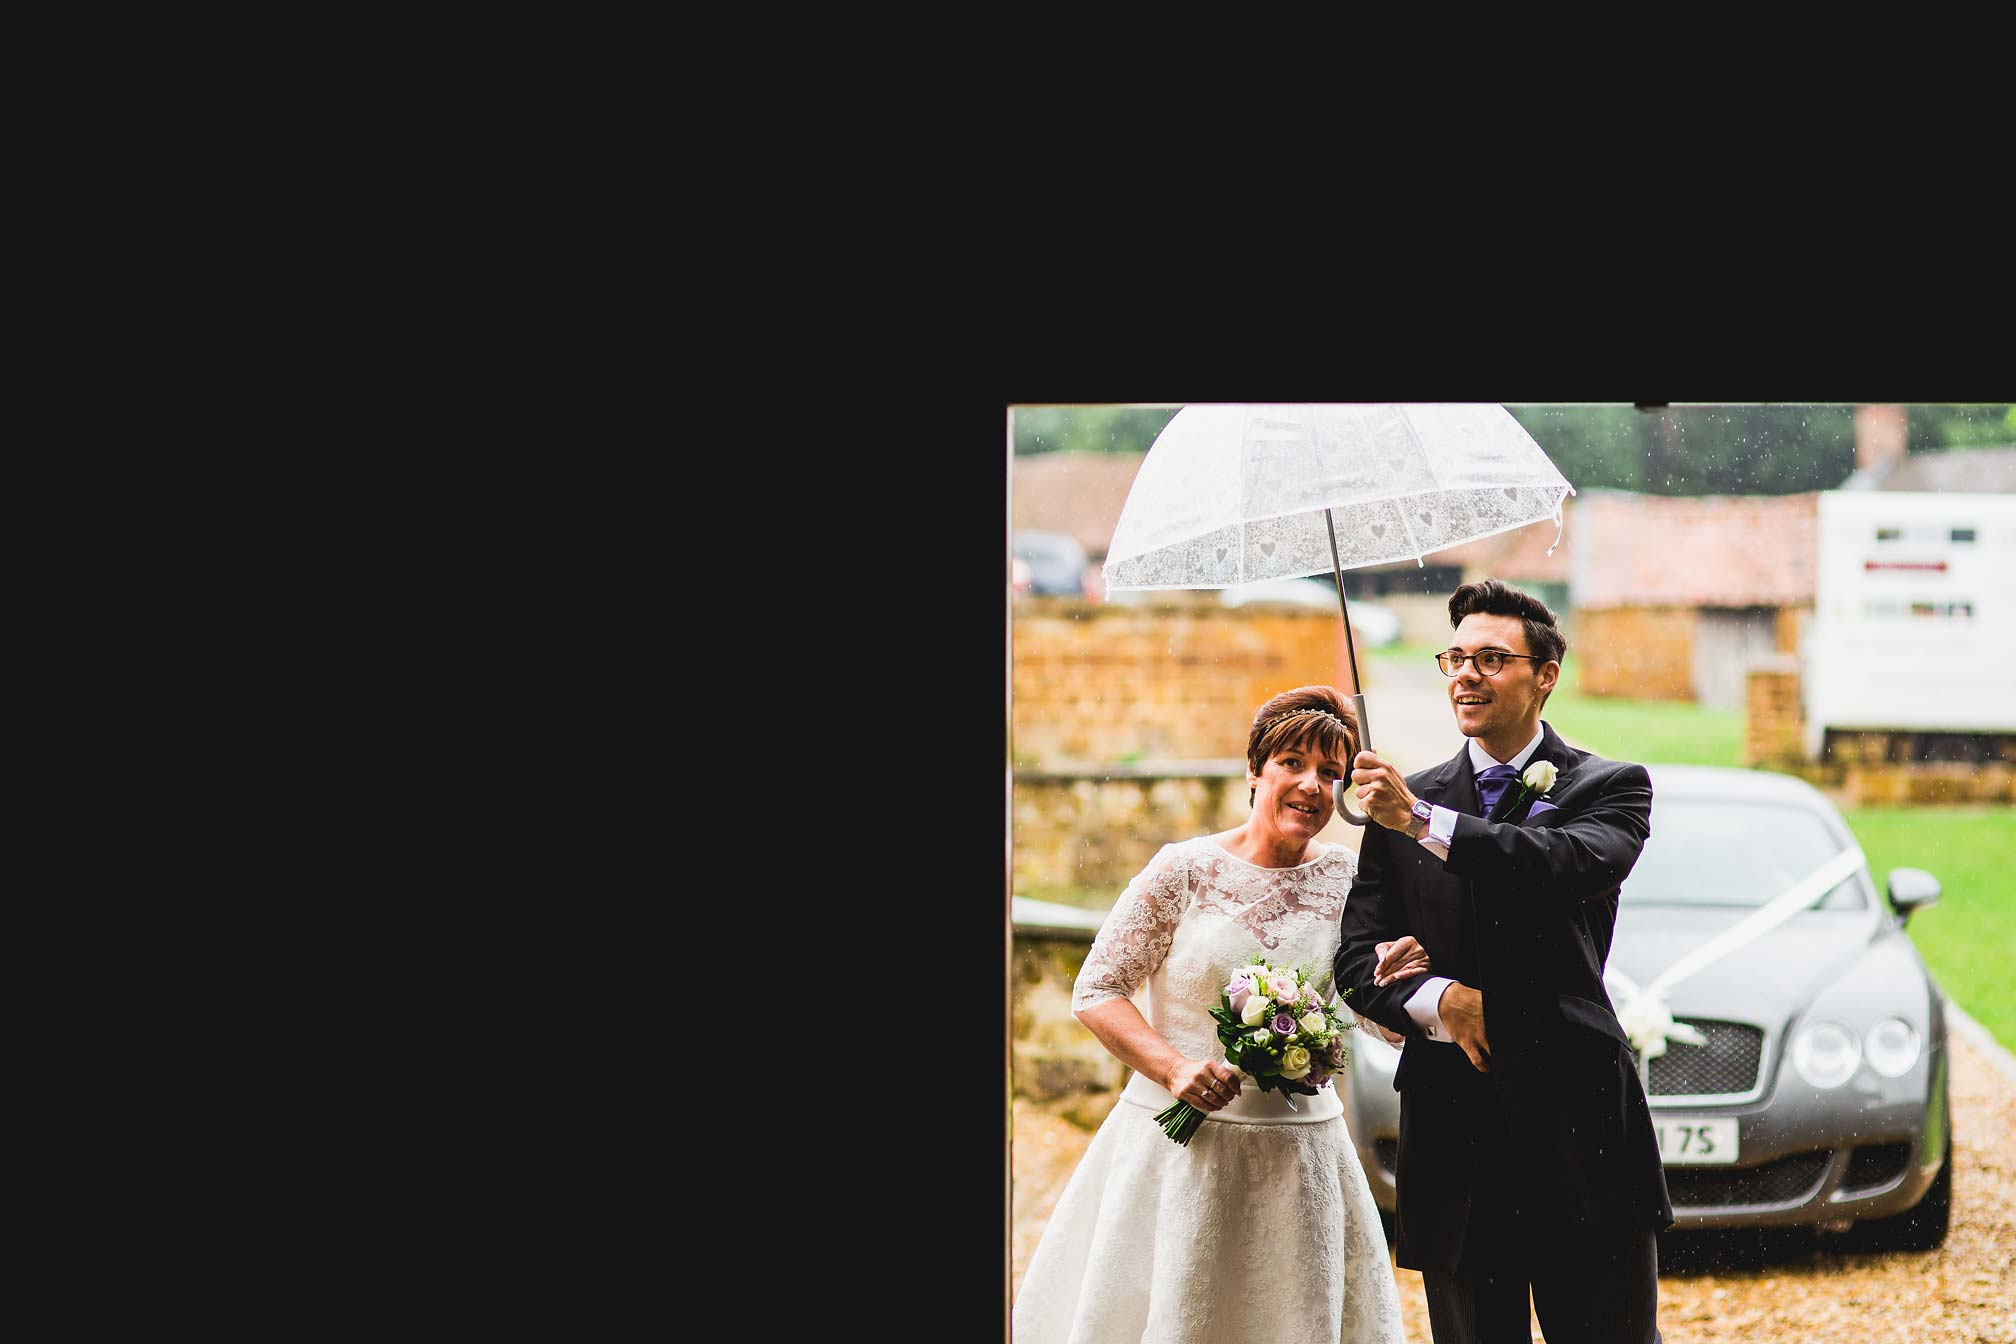 MyWed Editors Choice - Bride Waiting in the Rain